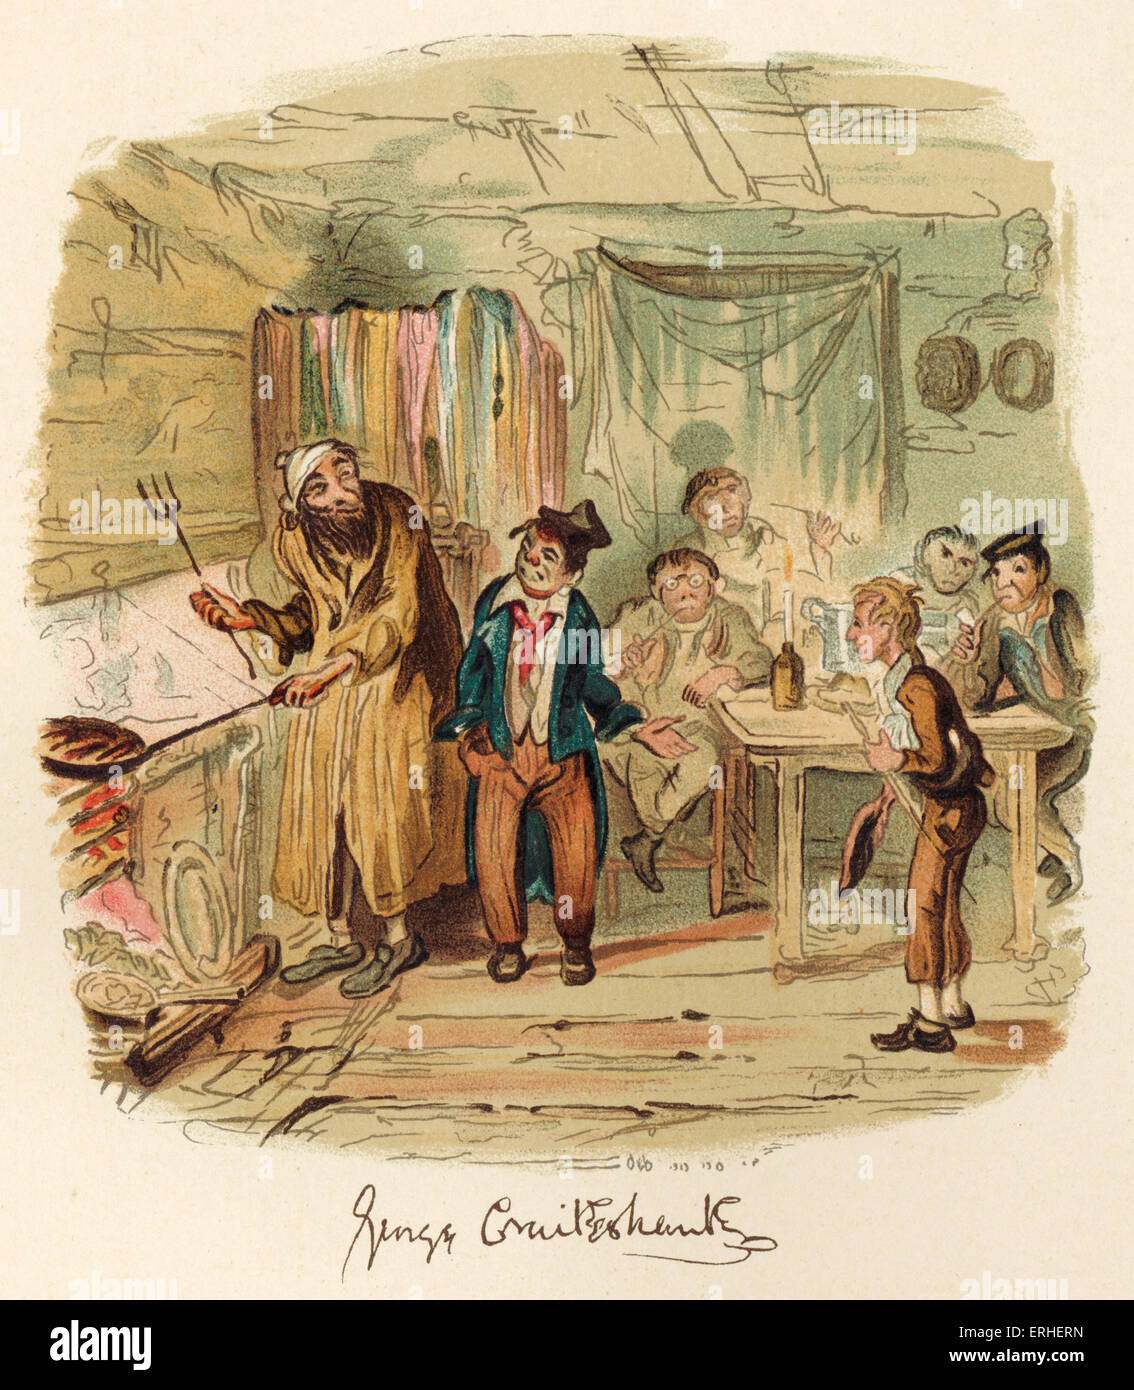 Image result for fagin dickens illustrations